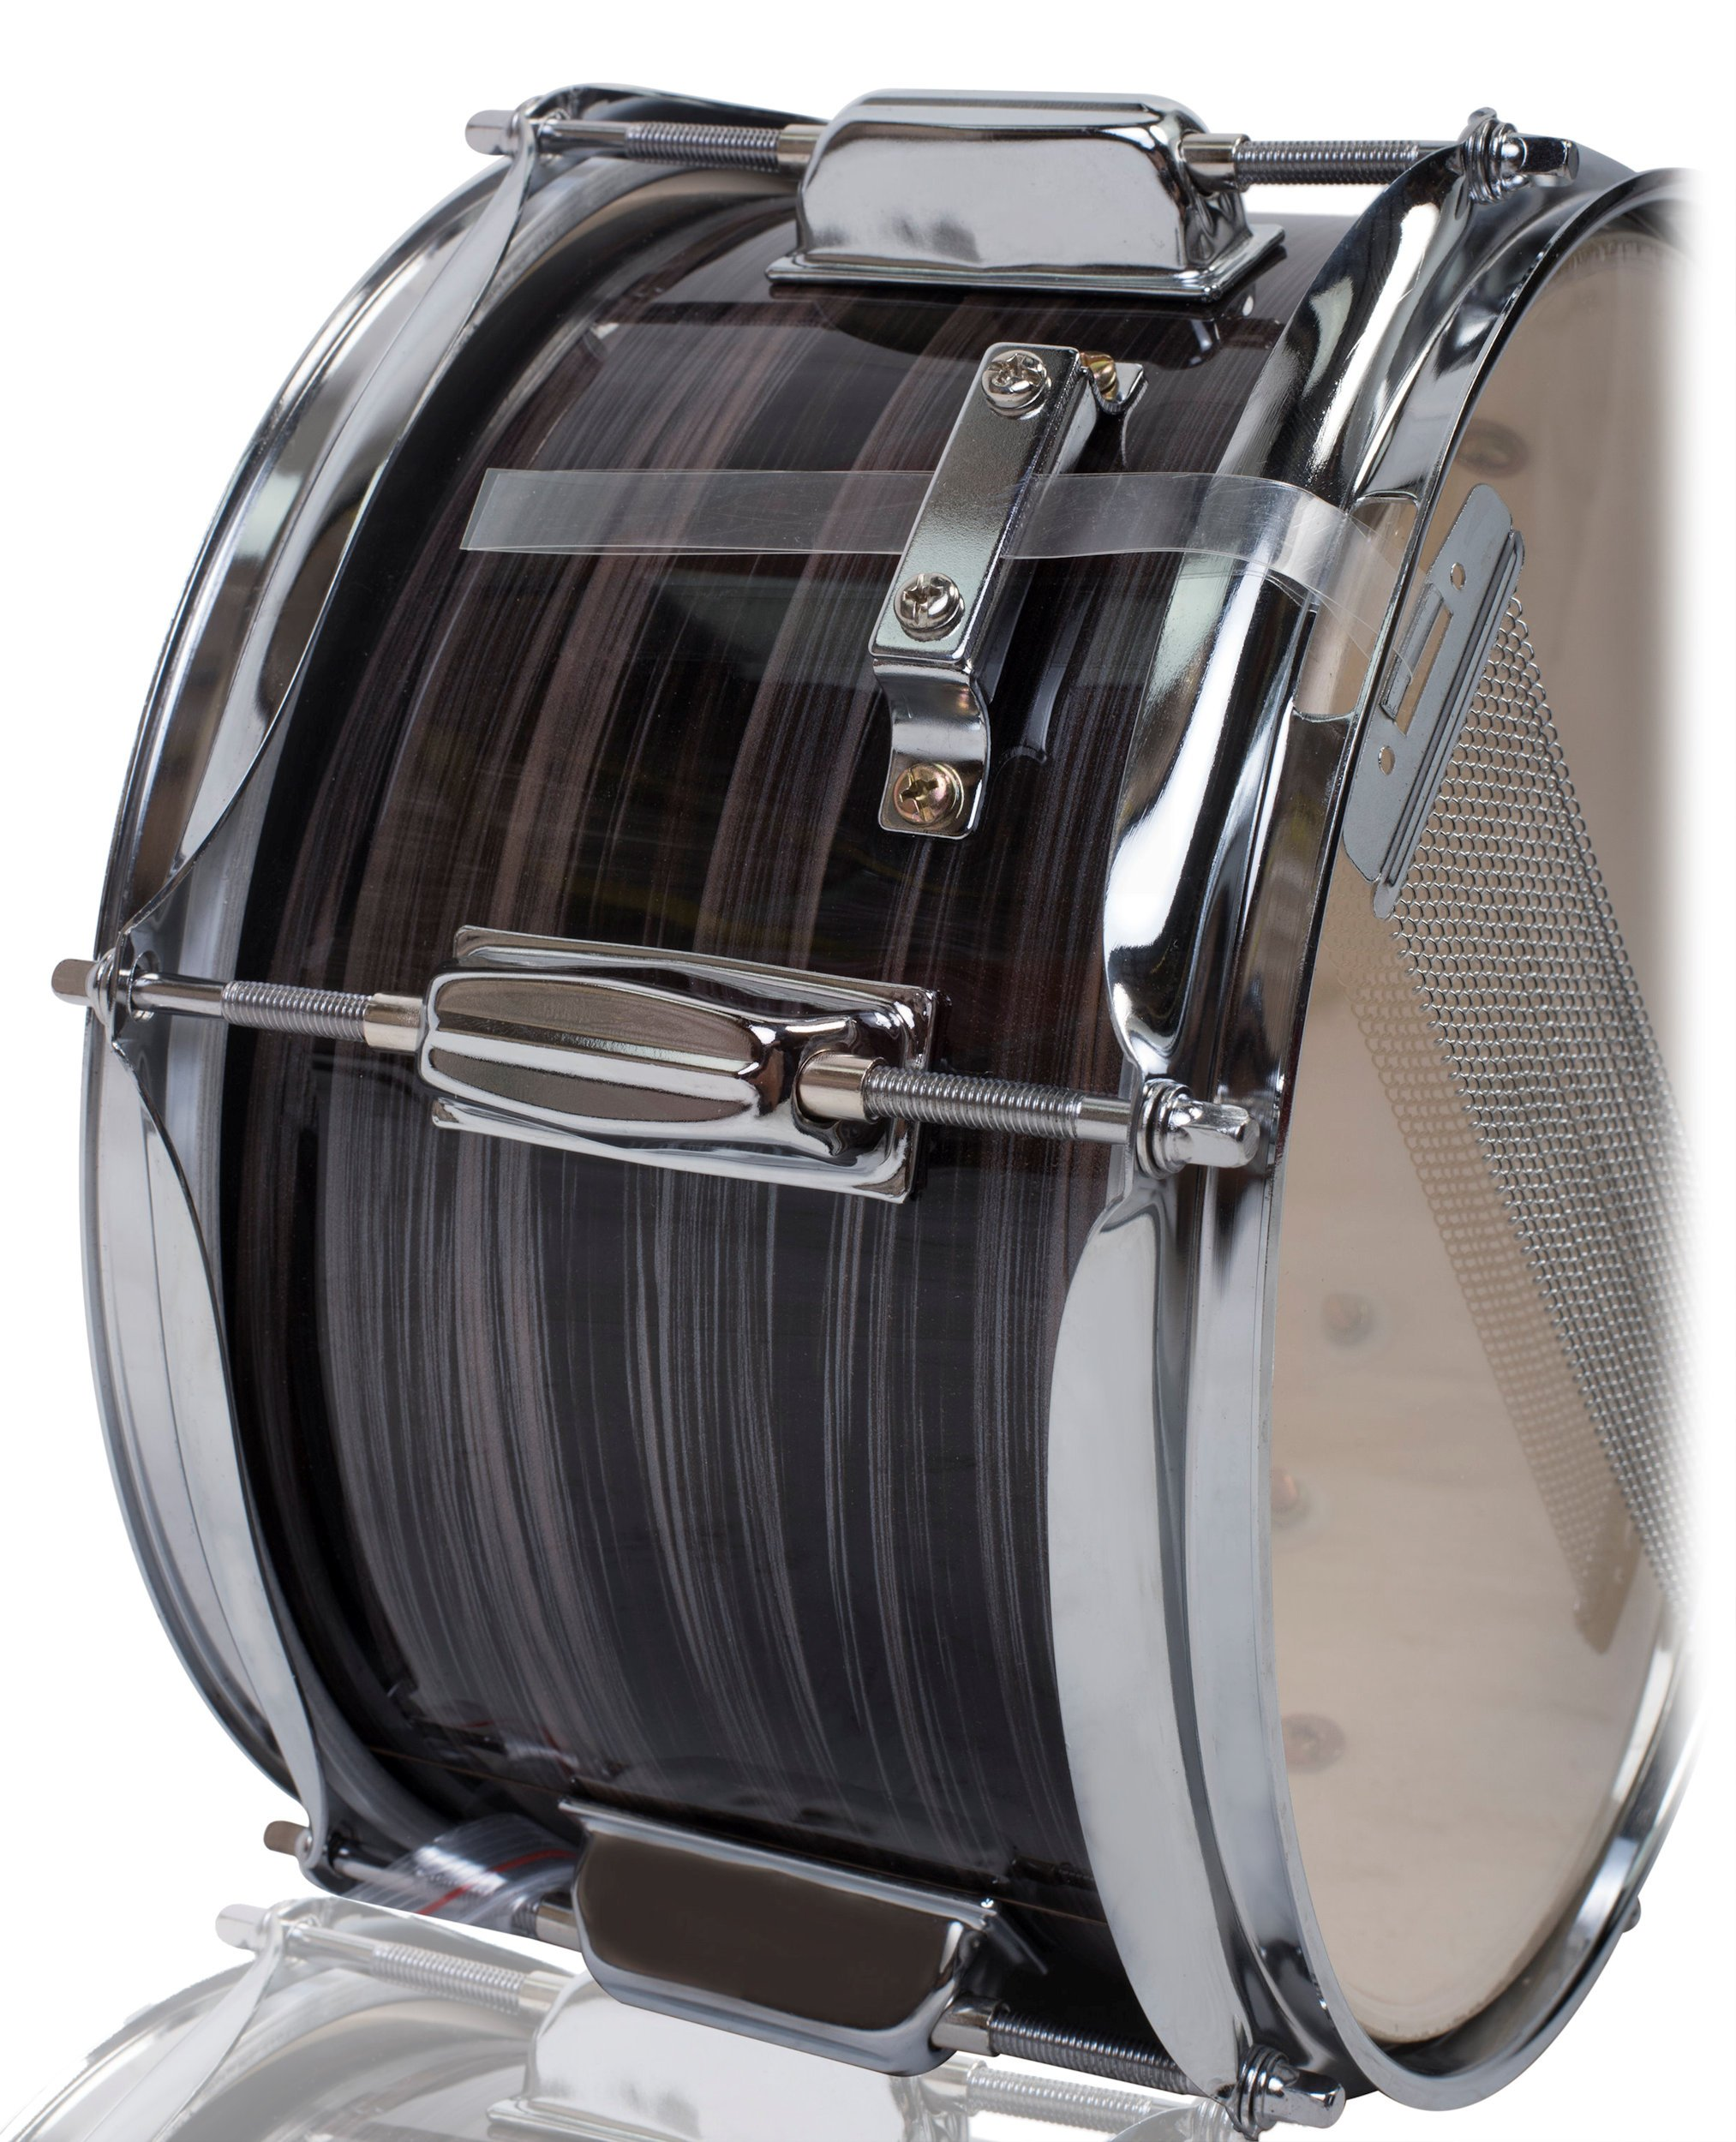 Popcorn Snare Drum by Griffin | Firecracker 10'' x 6'' Poplar Shell with Zebra Wood PVC|Soprano Concert Percussion Musical Instrument with Drummers Key and Deluxe Snare Strainer|Beginner & Professional by Griffin (Image #3)